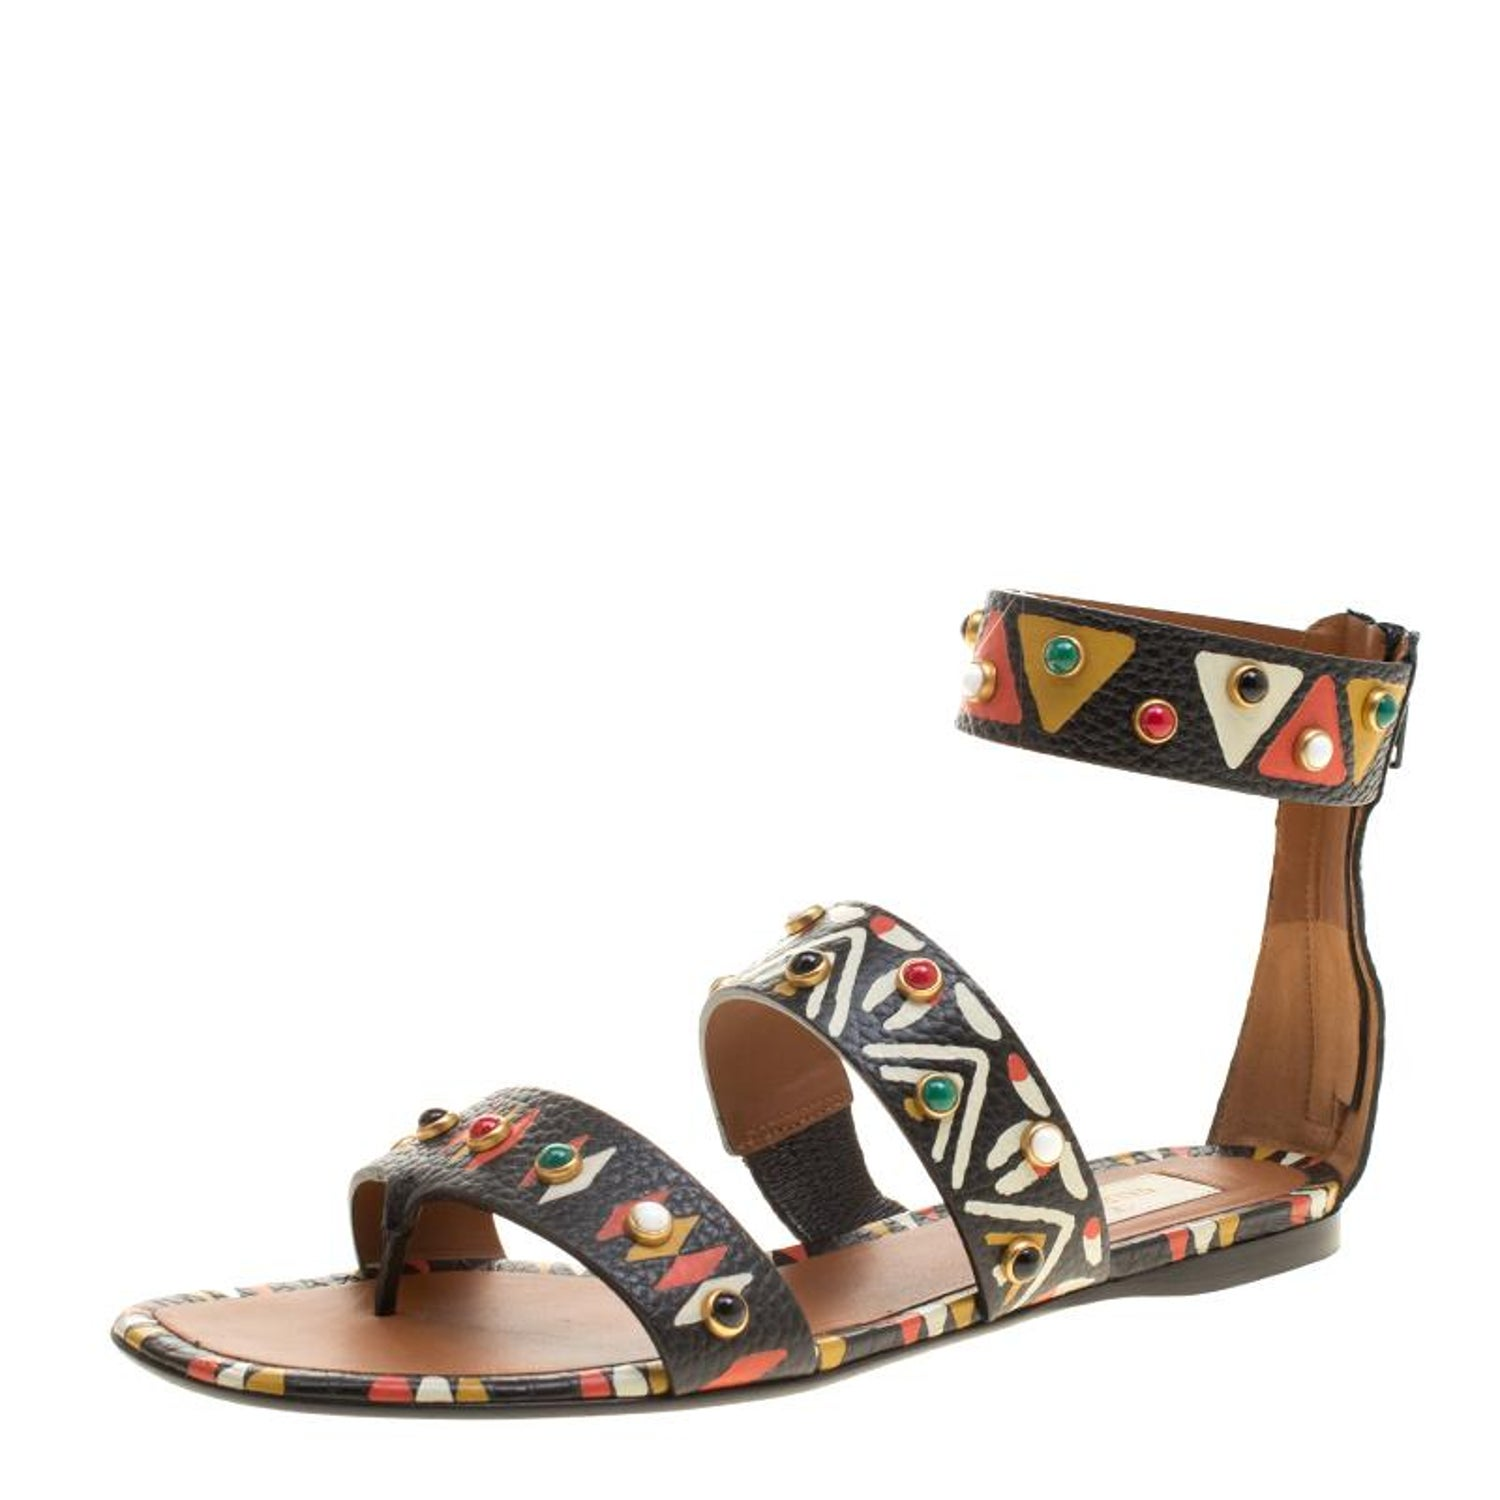 937baa465b97 Valentino Hand Painted Tribal Design Studded Leather Flat Sandals Size 37.5  at 1stdibs